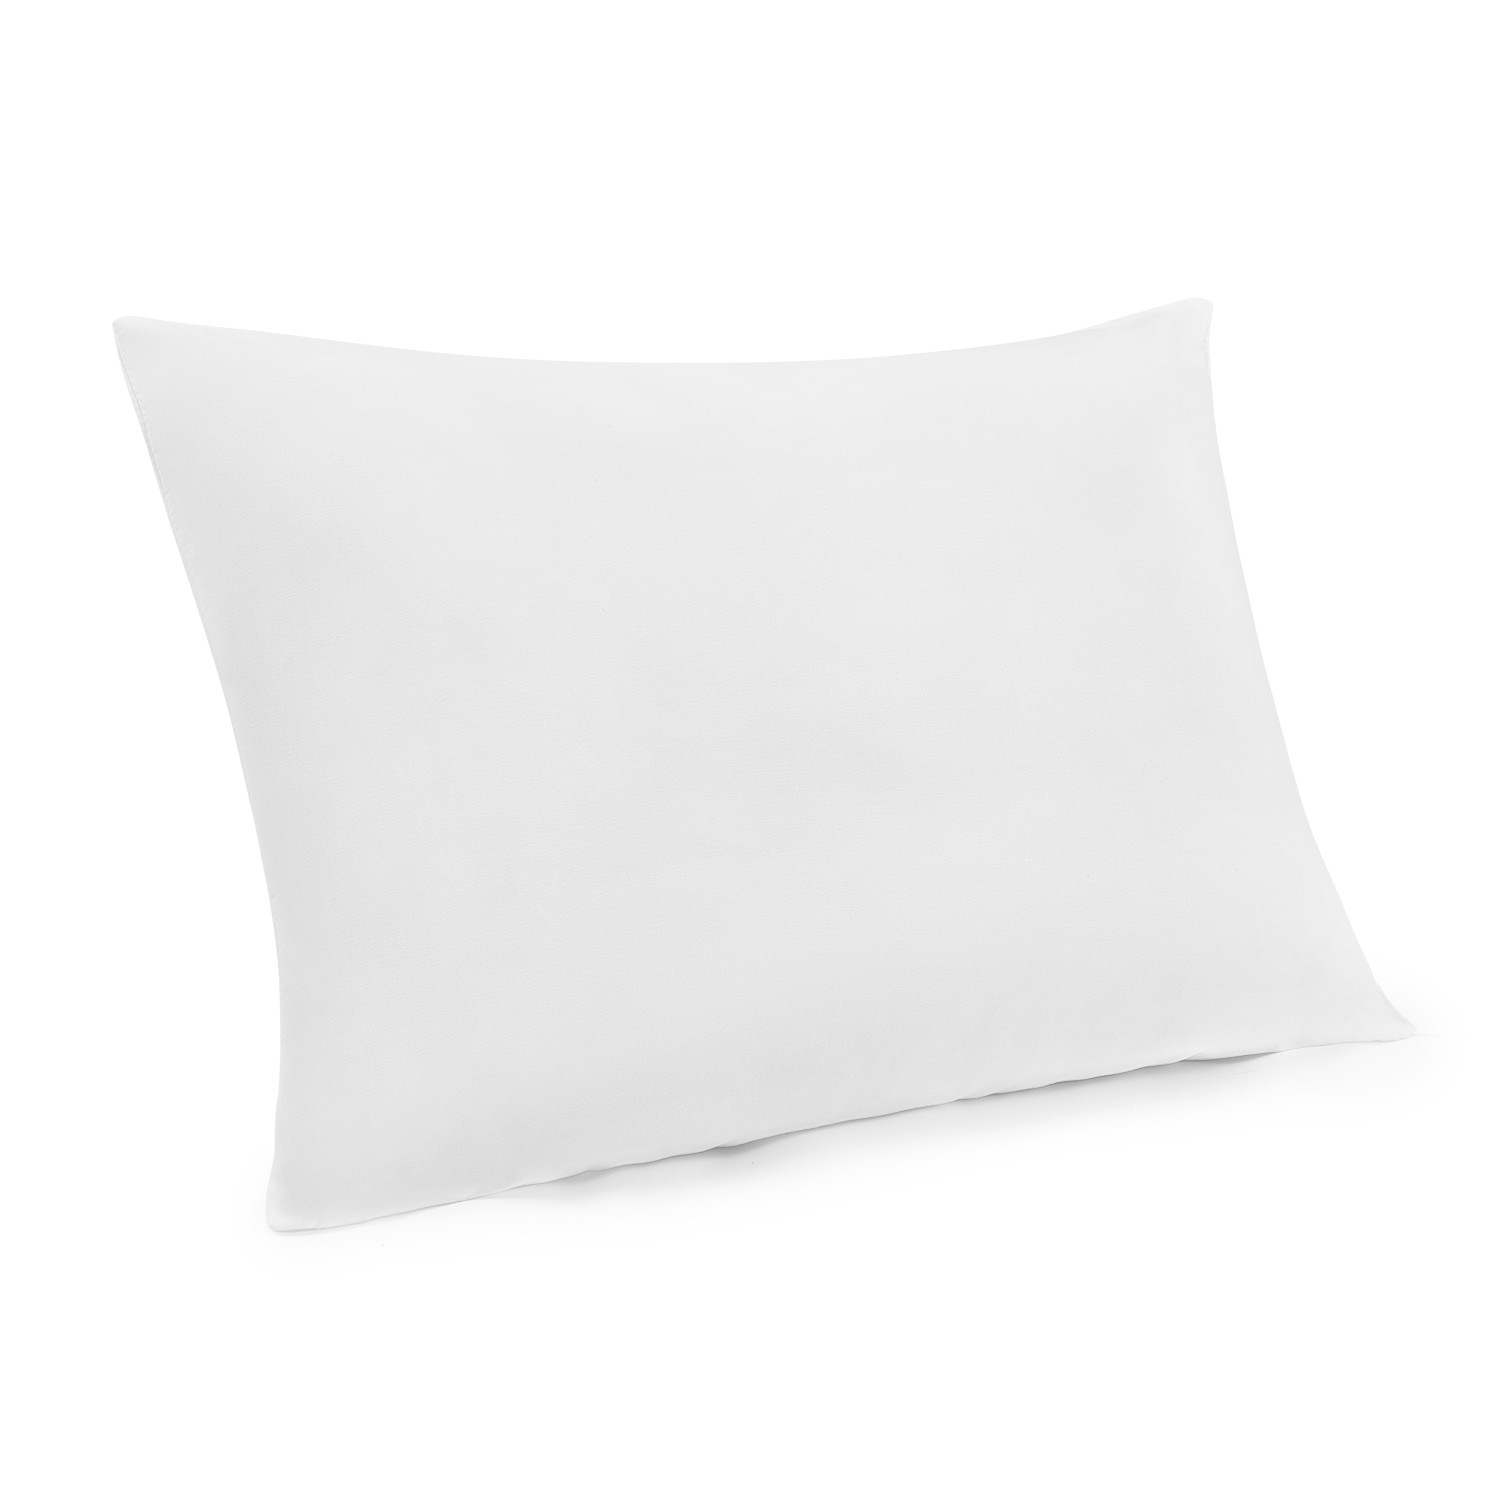 mainstays mainstays 100 polyester travel pillow 14 x 20 in white set of 2 walmart com